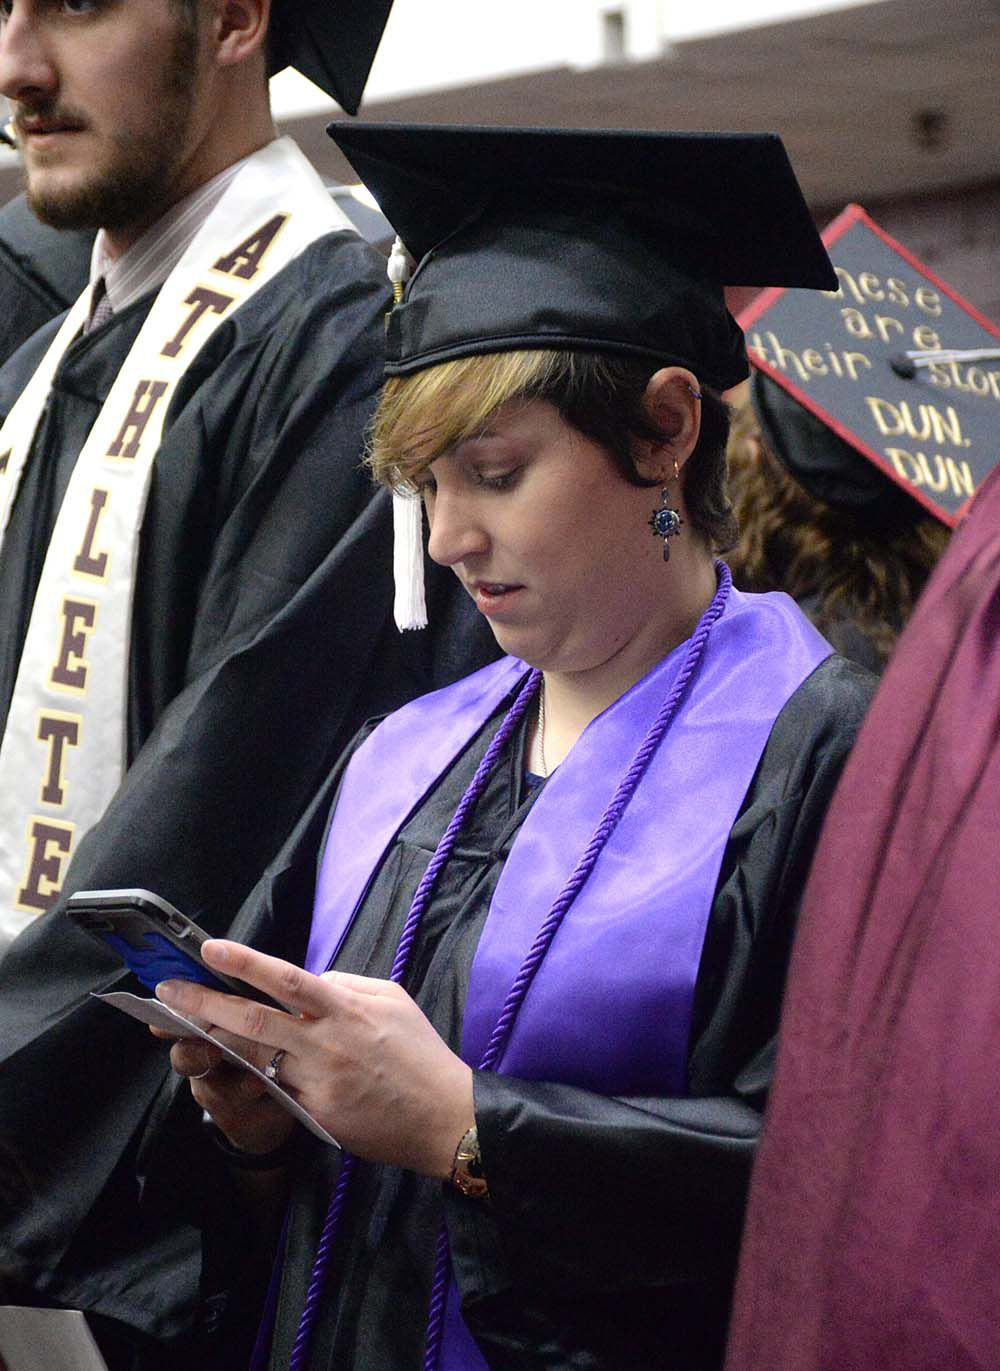 Rose tells FSU graduates that facing risk brings opportunity to grow ...